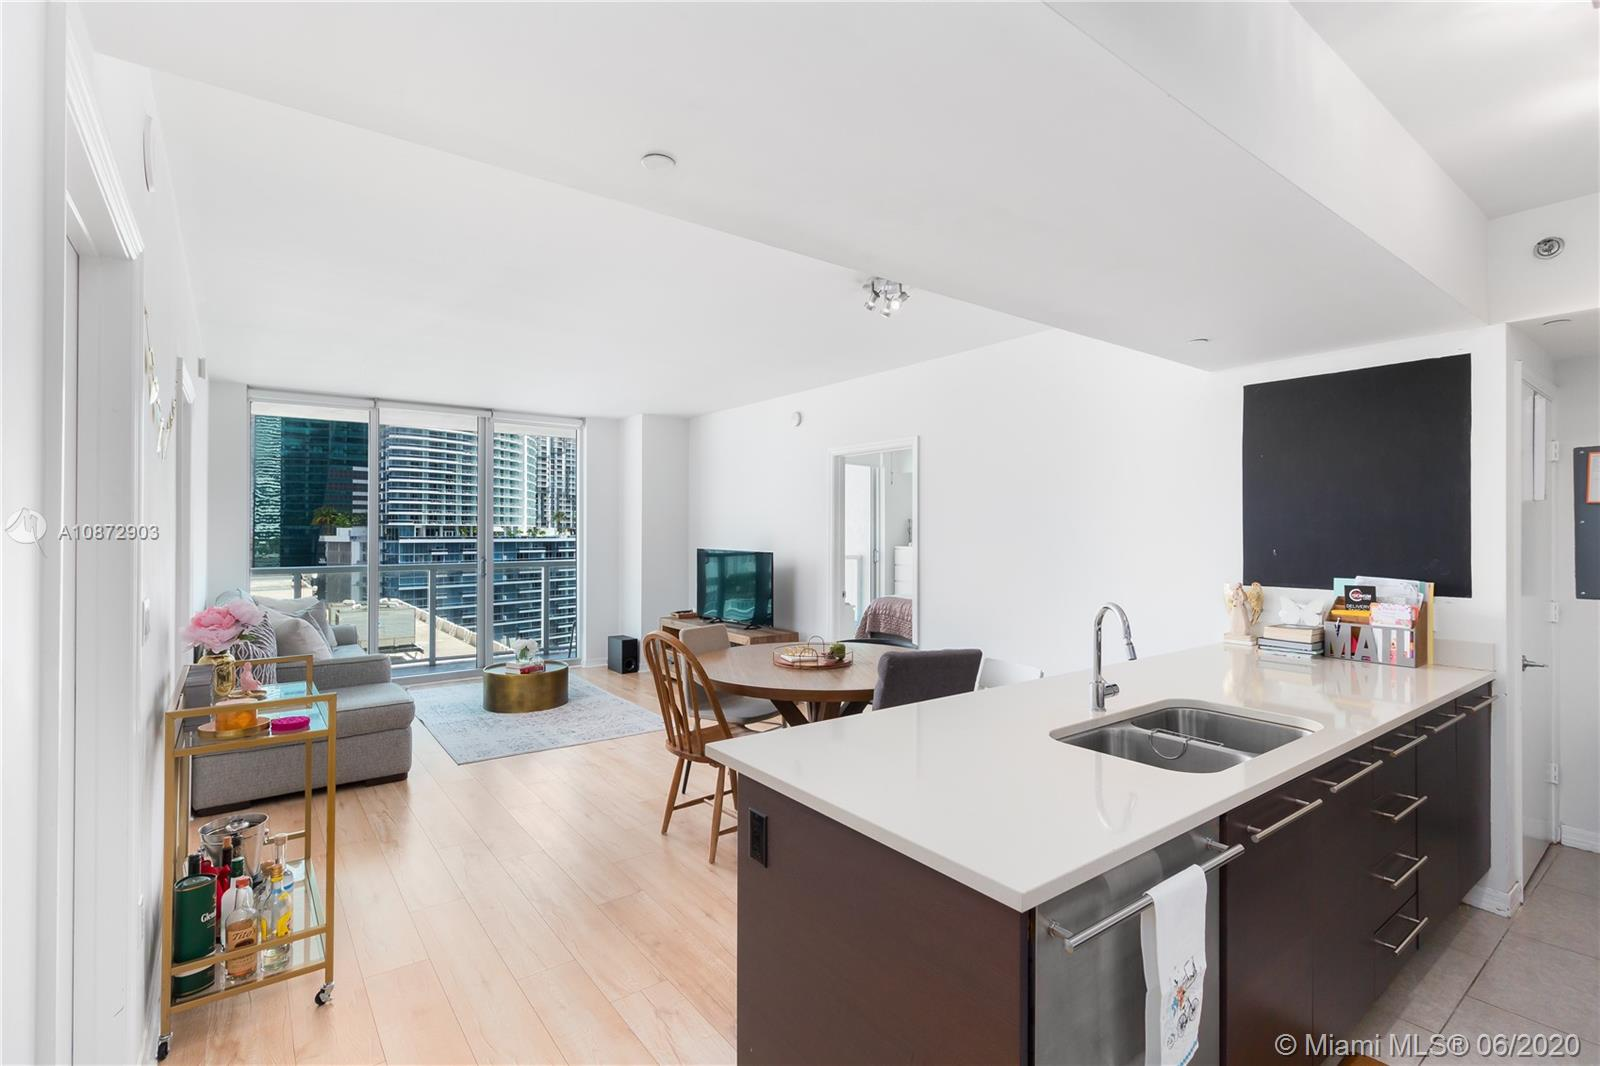 3D VIRTUAL TOUR (Link Below). Spectacular 2BR, 2Bath 1,124SF condo at 500 Brickell (East Tower) has direct North facing views & floor-to-ceiling sliding windows & direct balcony access from every room! Unit features a spacious split floor-plan, large bedrooms (BOTH with ensuite & walk-in closets); open concept kitchen, living/dining rooms, SS appliances, BRAND-NEW W/D (full size - front loading), BRAND-NEW AC UNIT, NEW top quality laminate wood floors. Outstanding amenities, including 24-hour concierge & valet parking, 2 Pools rooftop & sundeck on 11th floor w/poolside cabanas, fitness center, sauna & steam rooms, sports room w/billiards table & kitchen, wine cellar, club room & theater room. 3D VIRTUAL TOUR available!